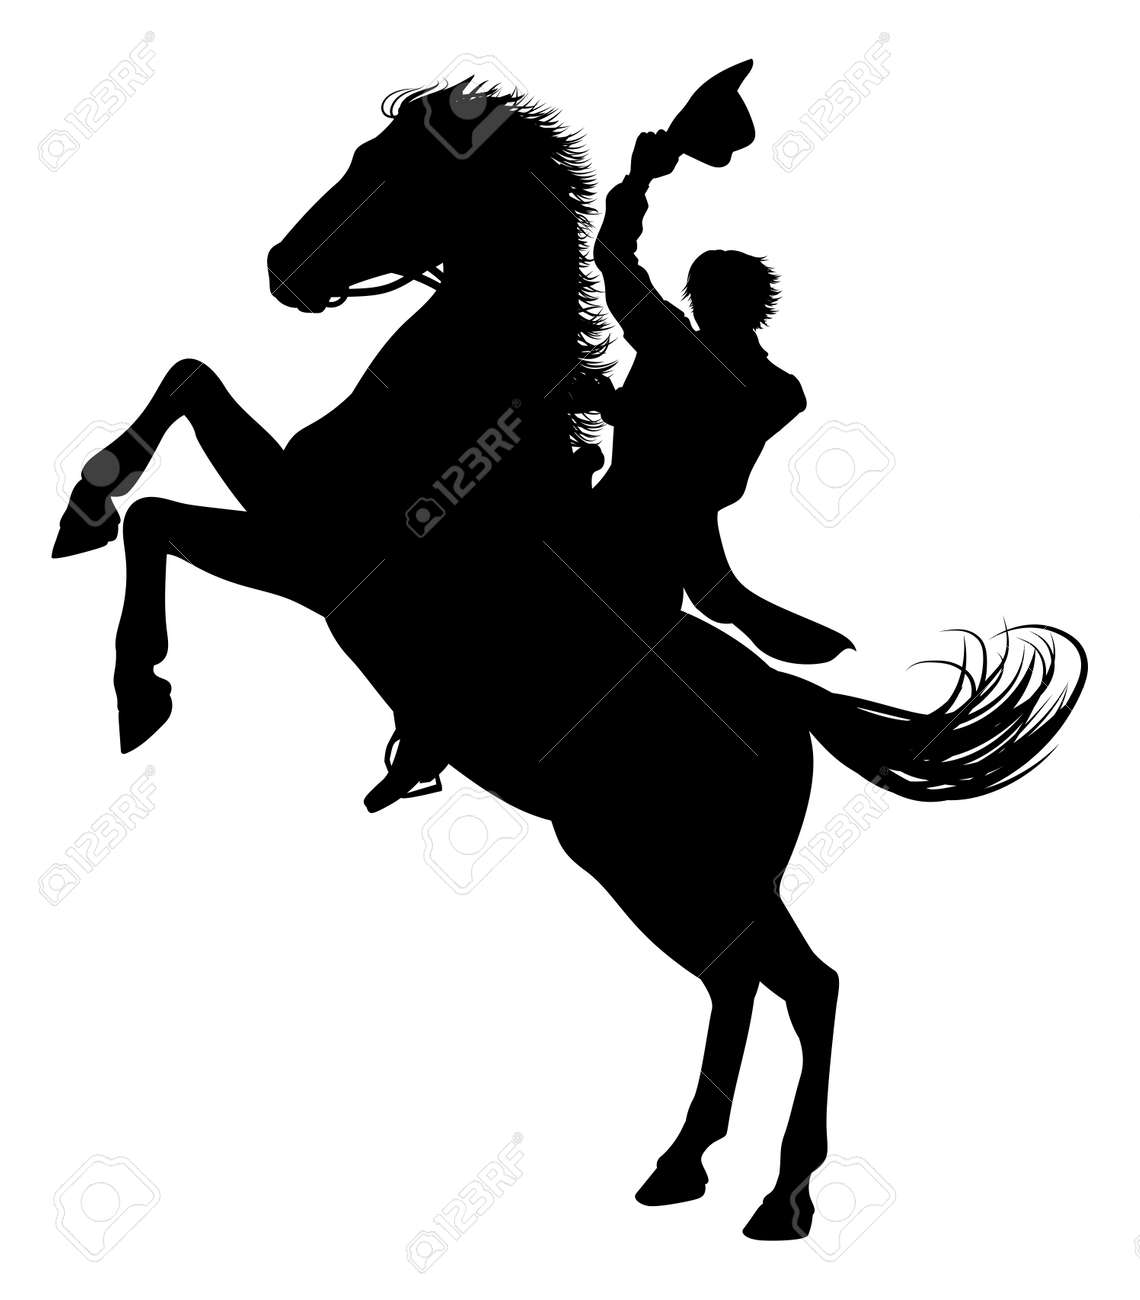 Cowboy Riding Horse Silhouette Royalty Free Cliparts Vectors And Stock Illustration Image 139485821